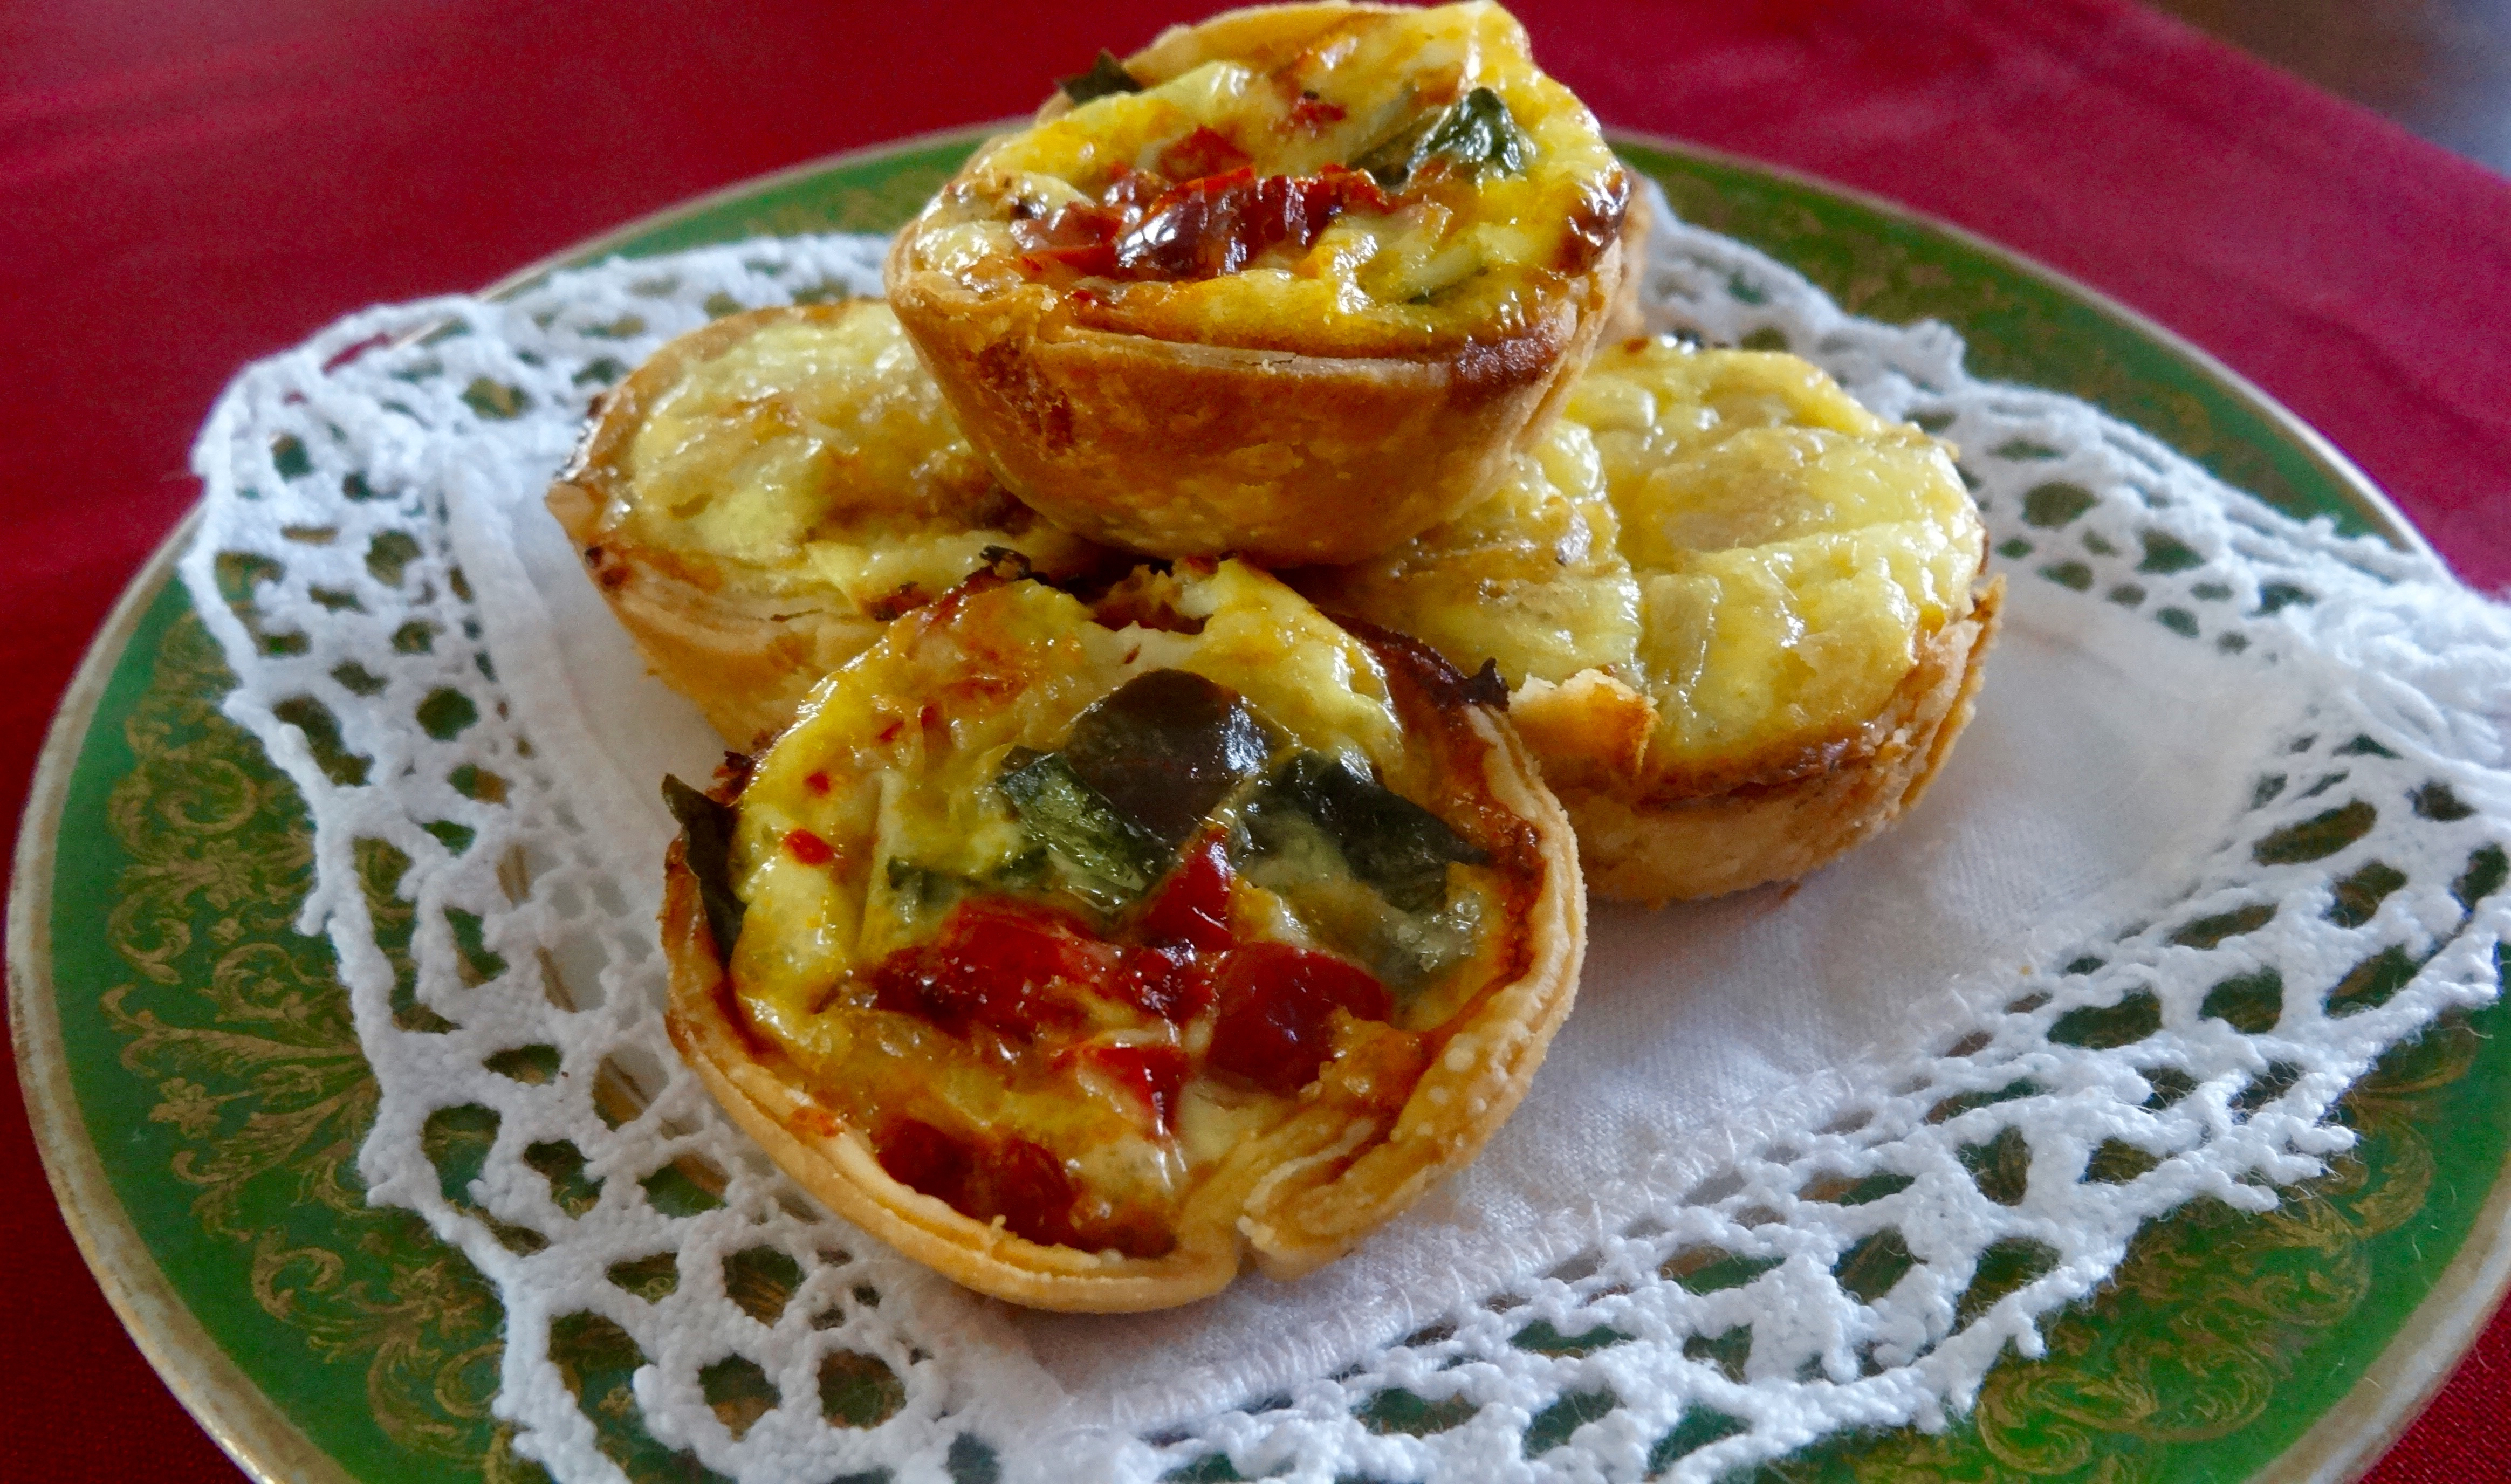 Finest Finest Savory Mini Quiche With Mini Kche With Kche Orange With  Minikche Hotel With Kche Orange